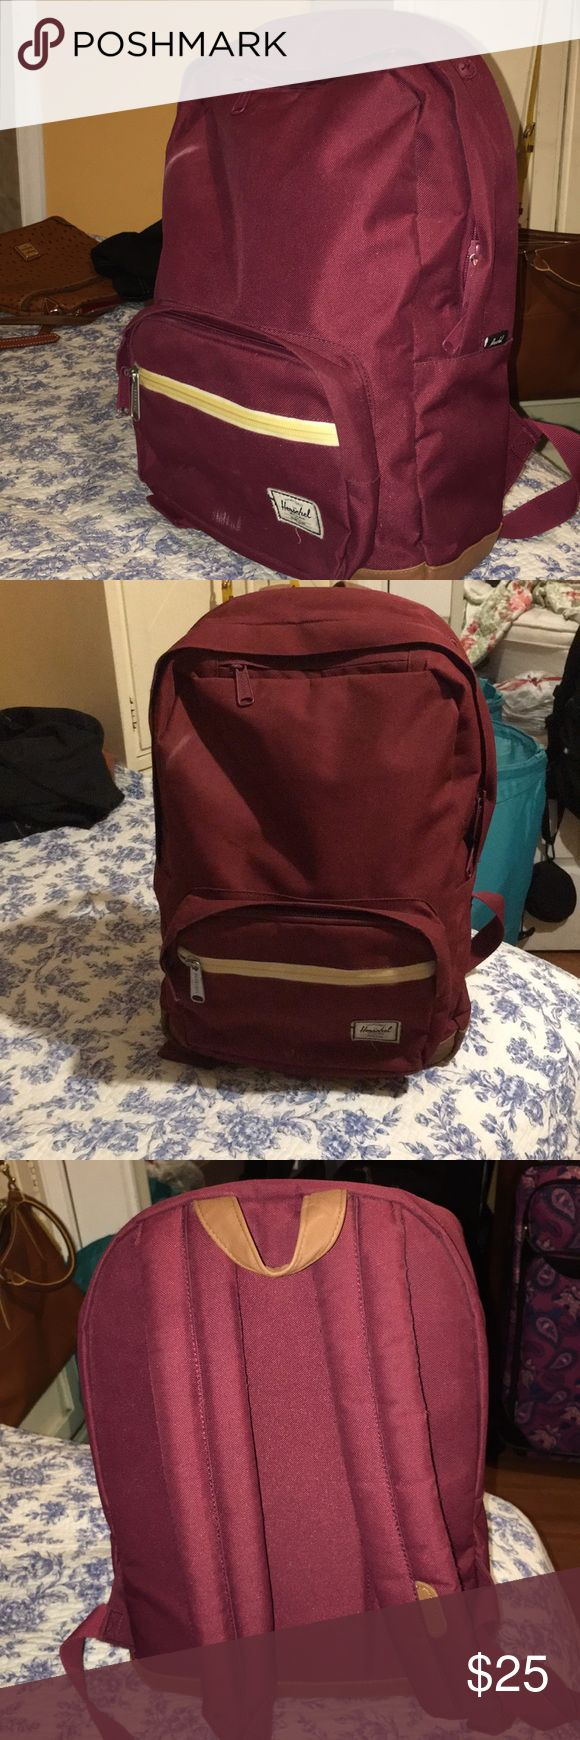 """Herschel Backpack Maroon Herschel Backpack with laptop sleeve  Pretty spacious, at least 14"""" in height The zipper pocket on top has been super convenient, easily fits an iPhone 6s  Some slight scuff marks that could easily be removed w fabric cleaner but otherwise good condition! Only used a few times for travel Herschel Supply Company Bags Backpacks"""